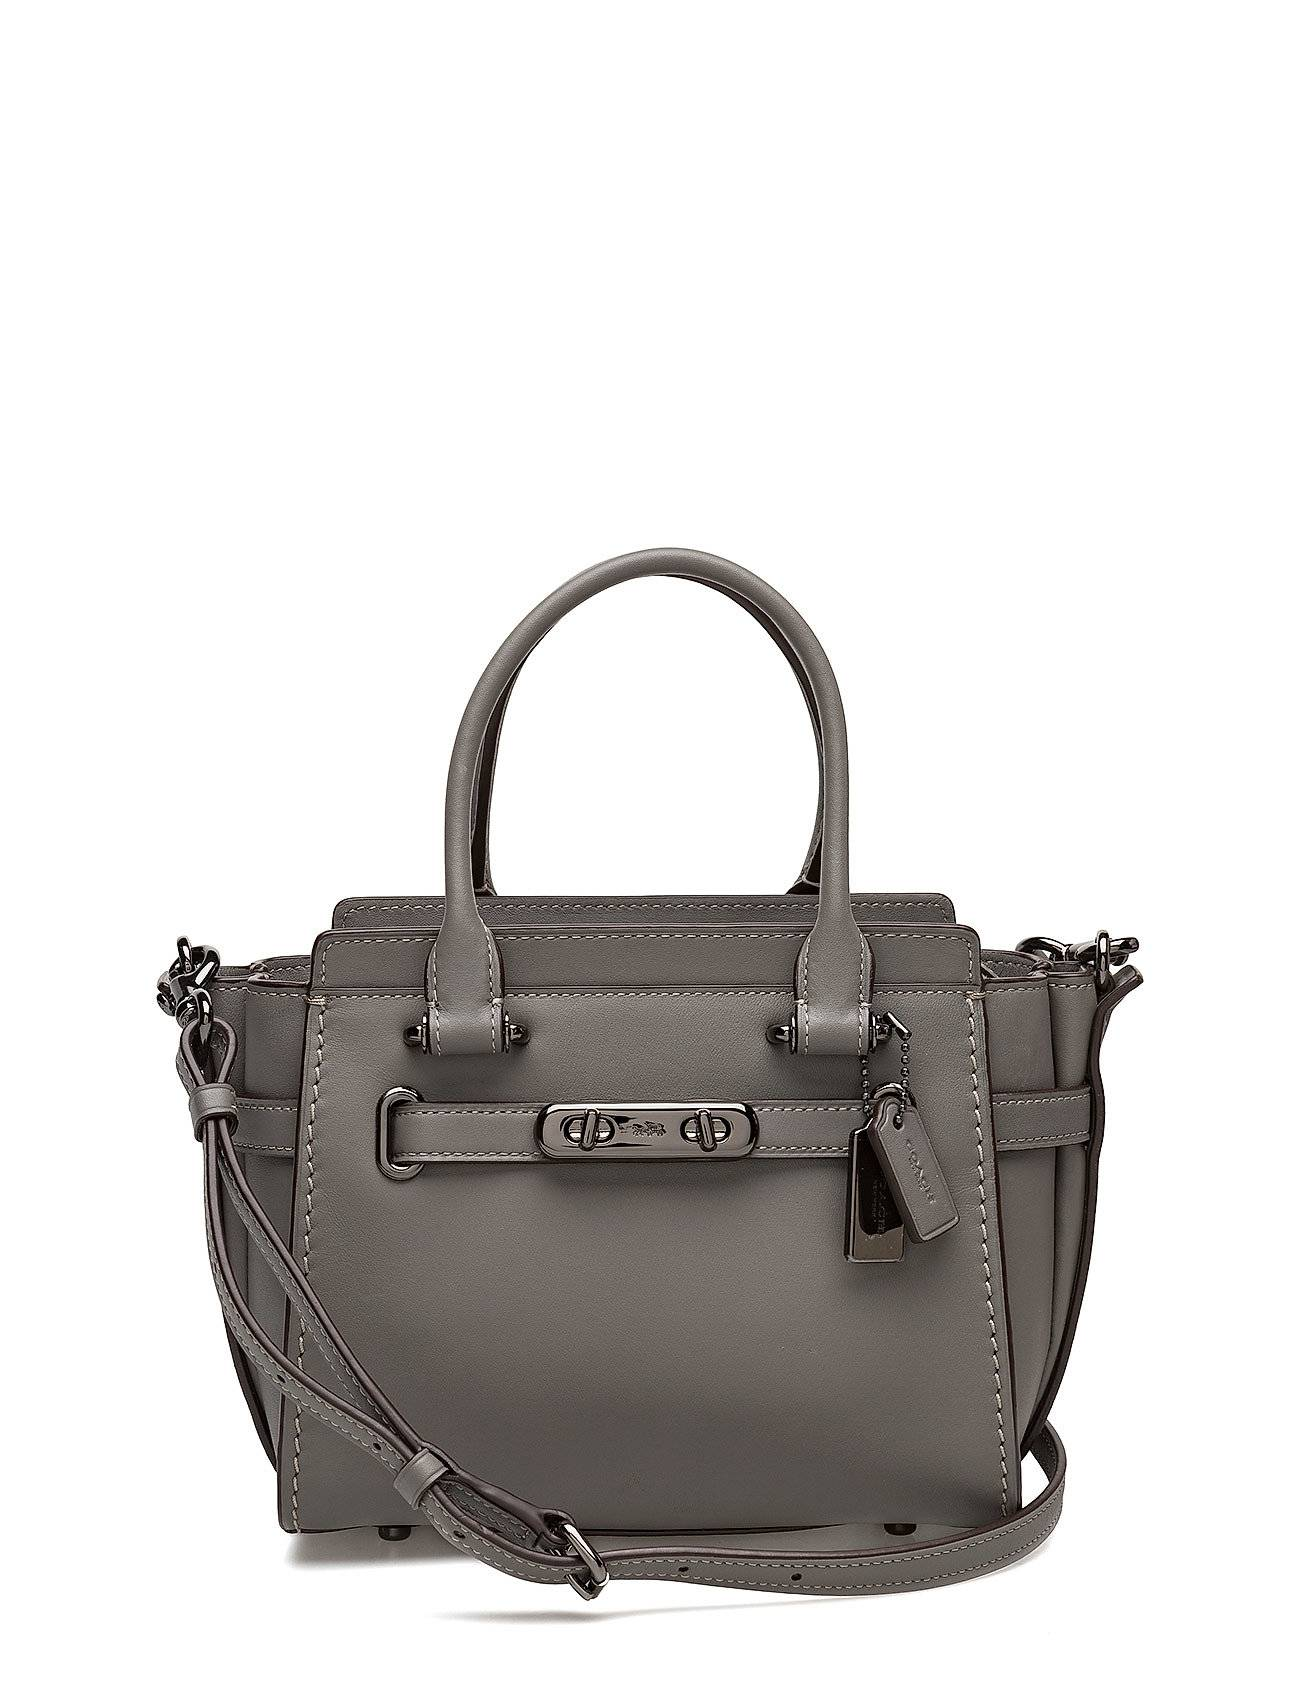 Coach Glovetanned Leather Coach Swagger 21